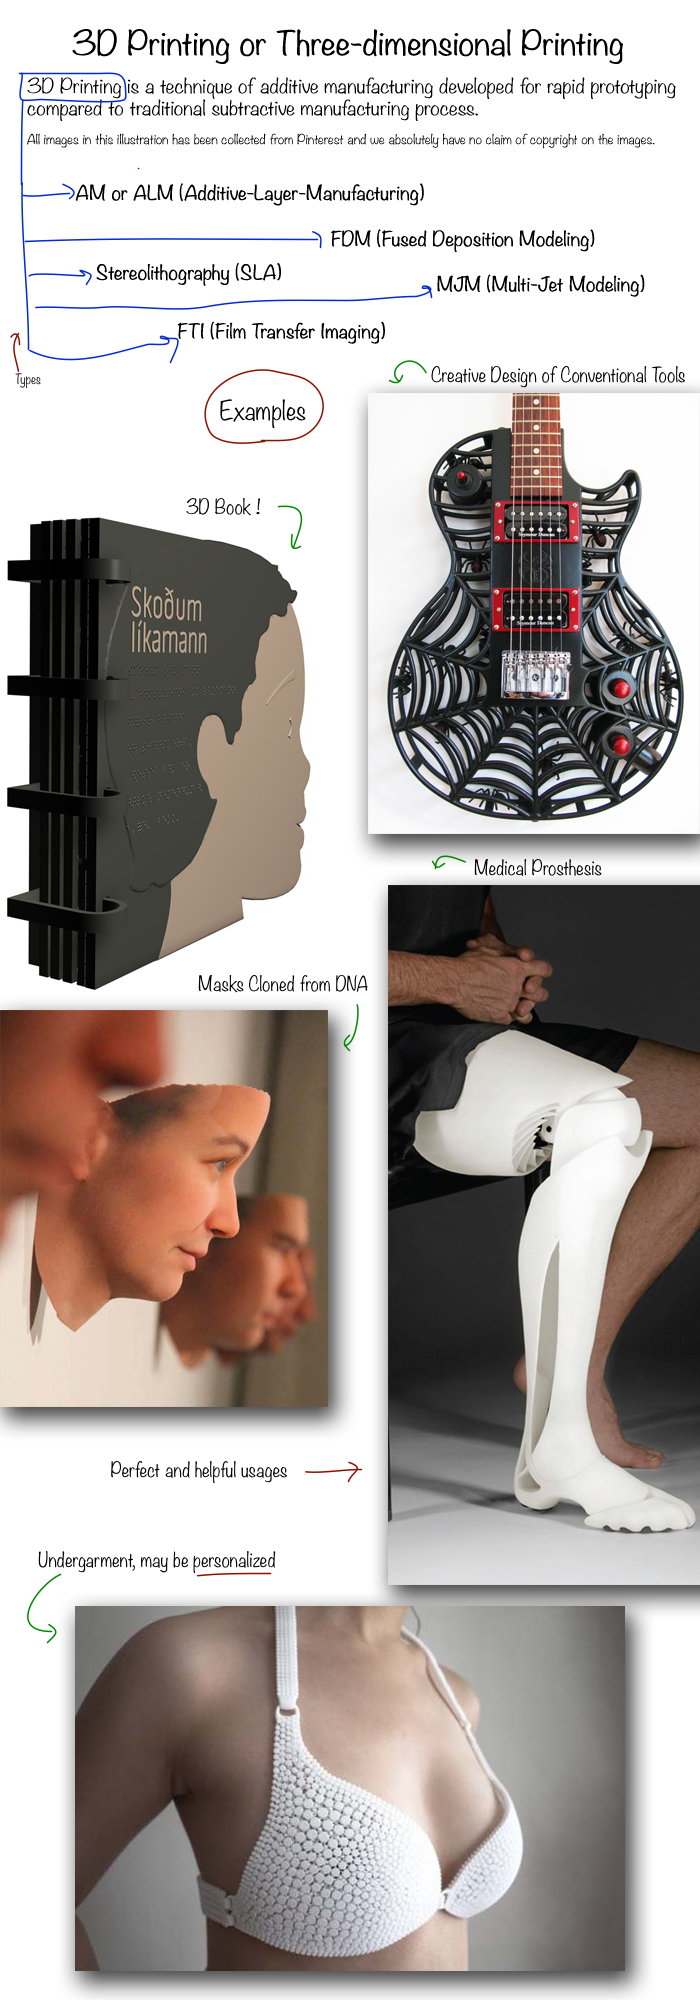 3D-Printing-or-Three-dimensional-Printing